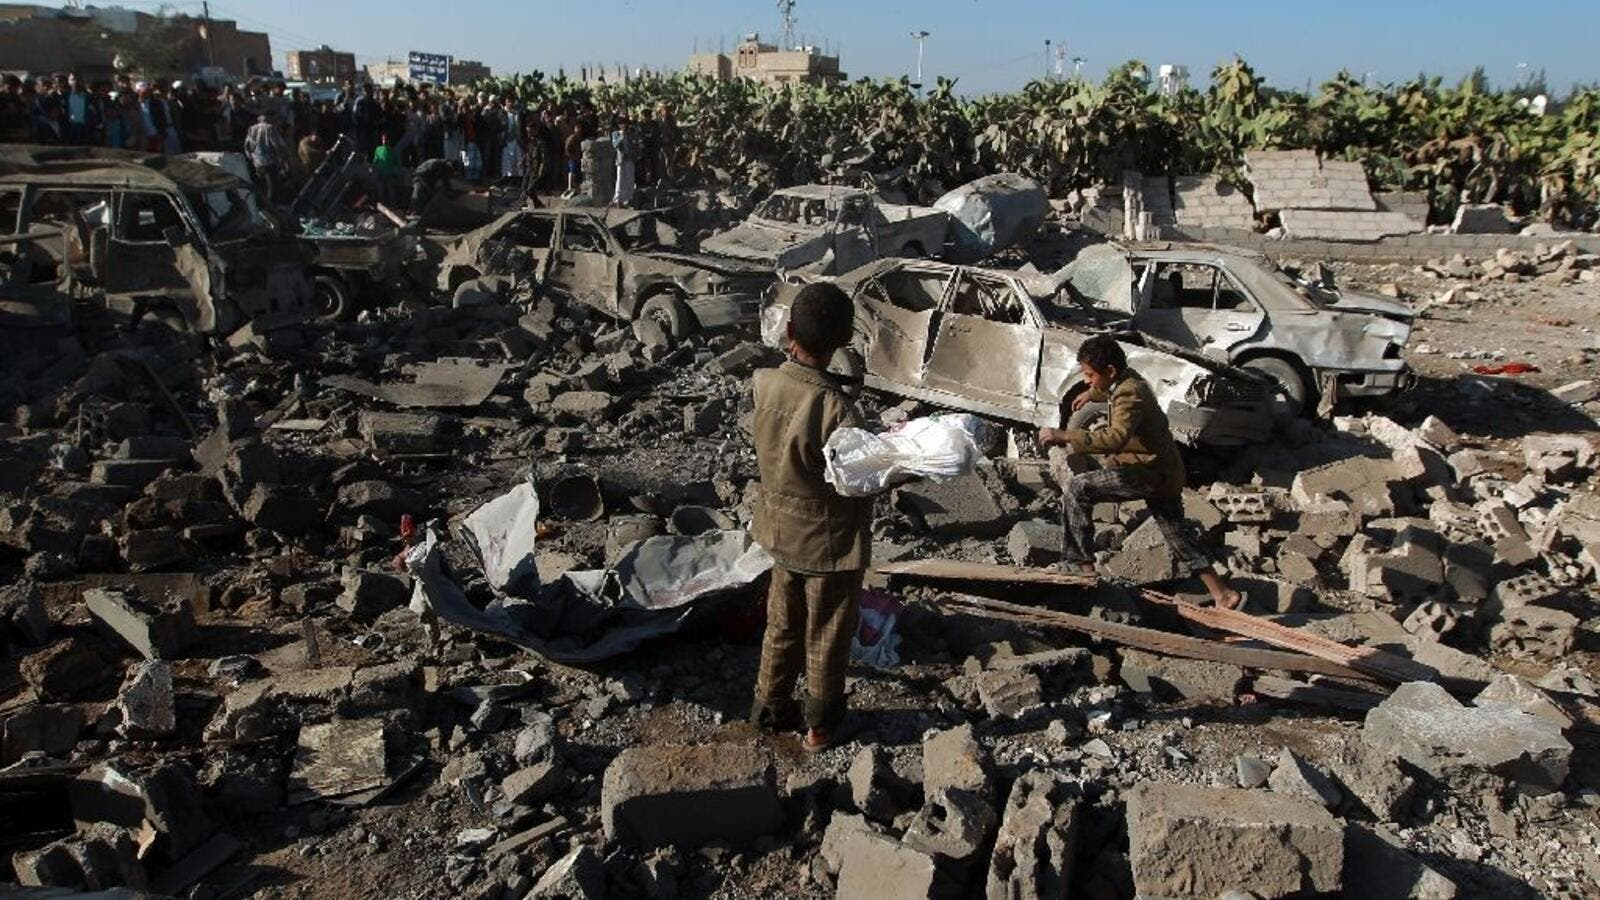 Yemenis stand at the site of a Saudi air strike against Huthi rebels near Sanaa Airport on March 26, 2015.  (AFP/Mohammed Huwais)